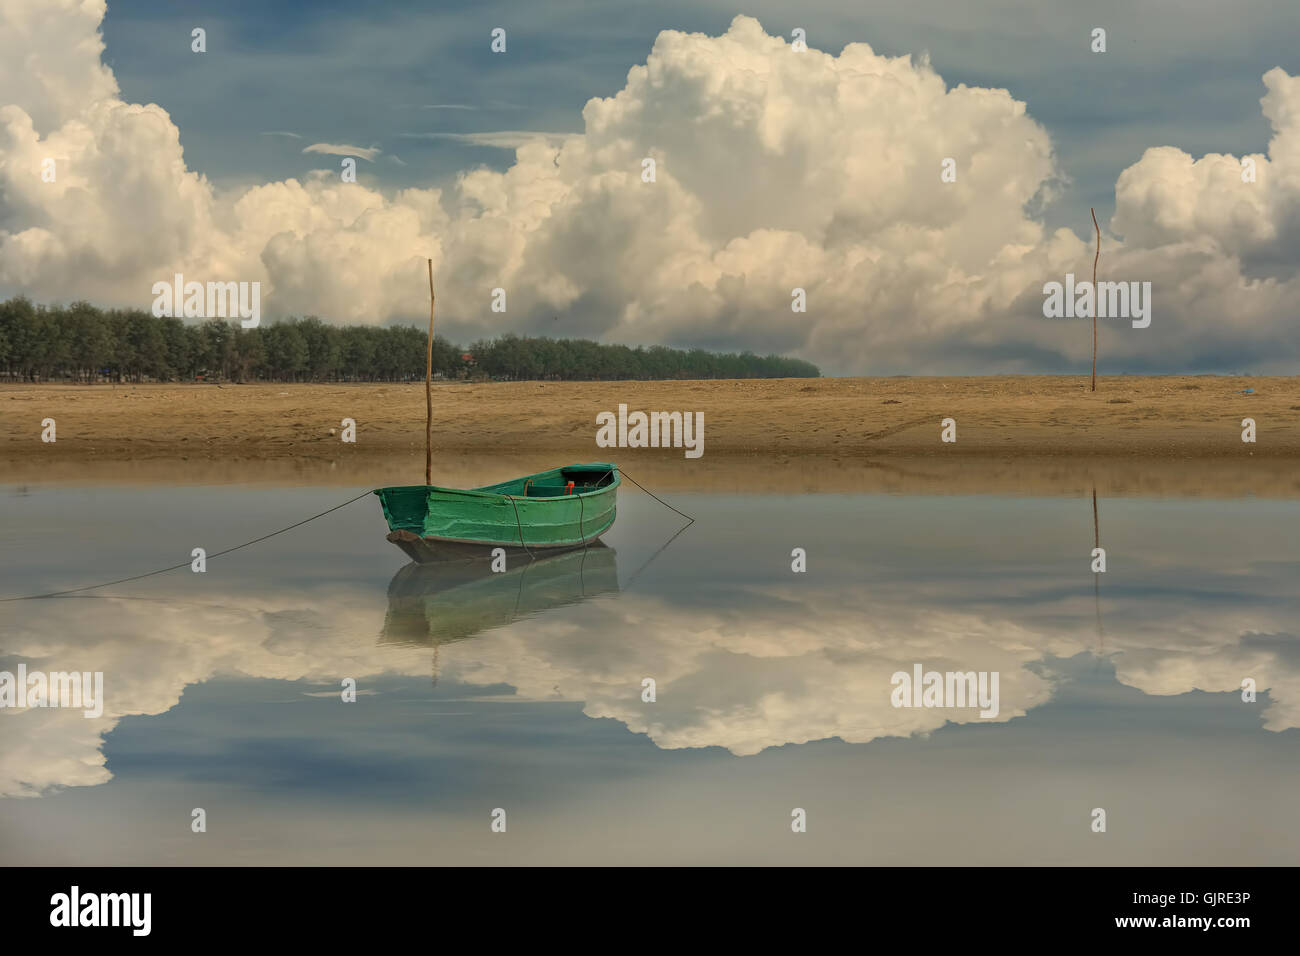 Sky, clouds, water reflections boats moor. - Stock Image